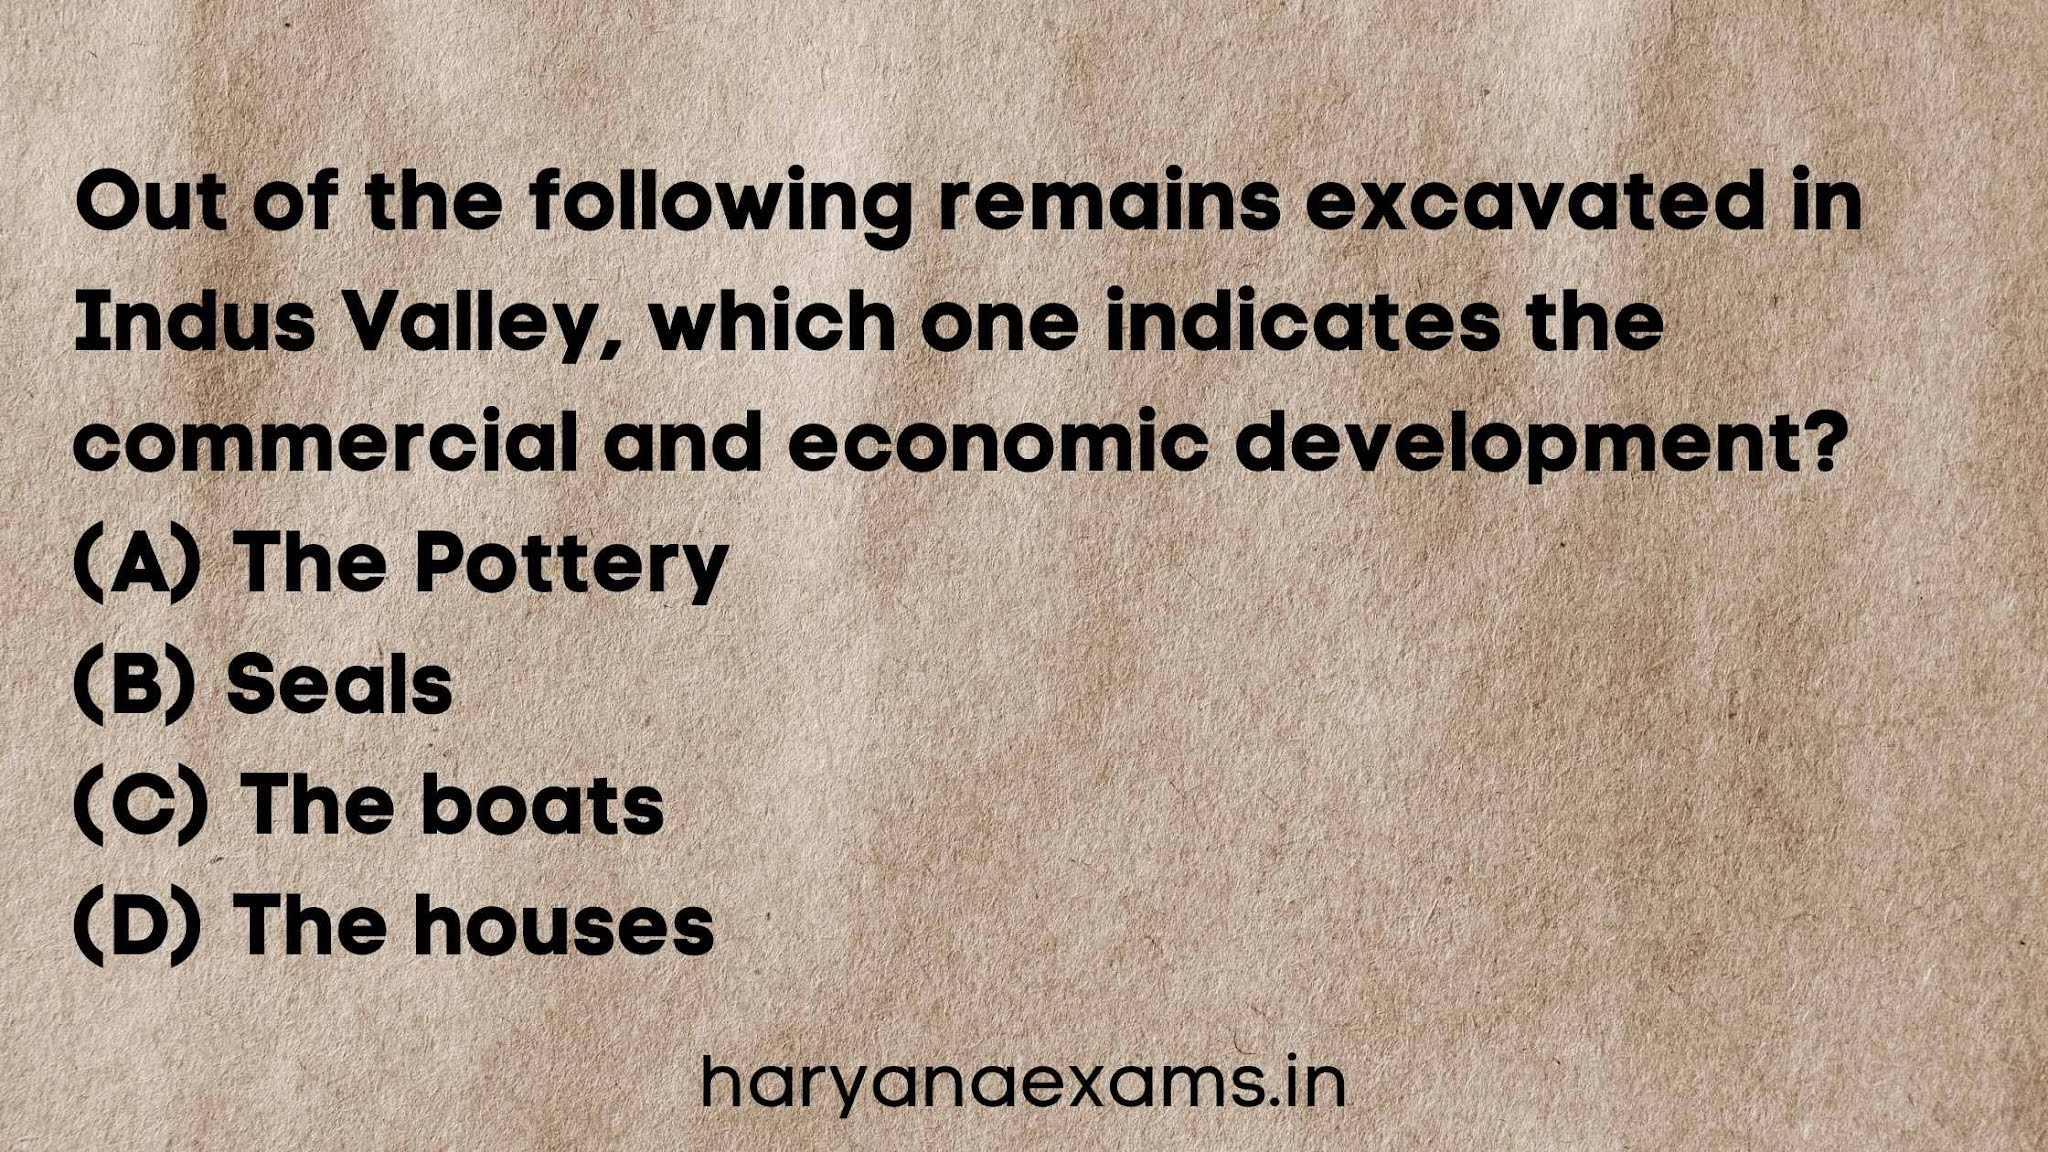 Out of the following remains excavated in Indus Valley, which one indicates the commercial and economic development?   (A) The Pottery   (B) Seals   (C) The boats   (D) The houses